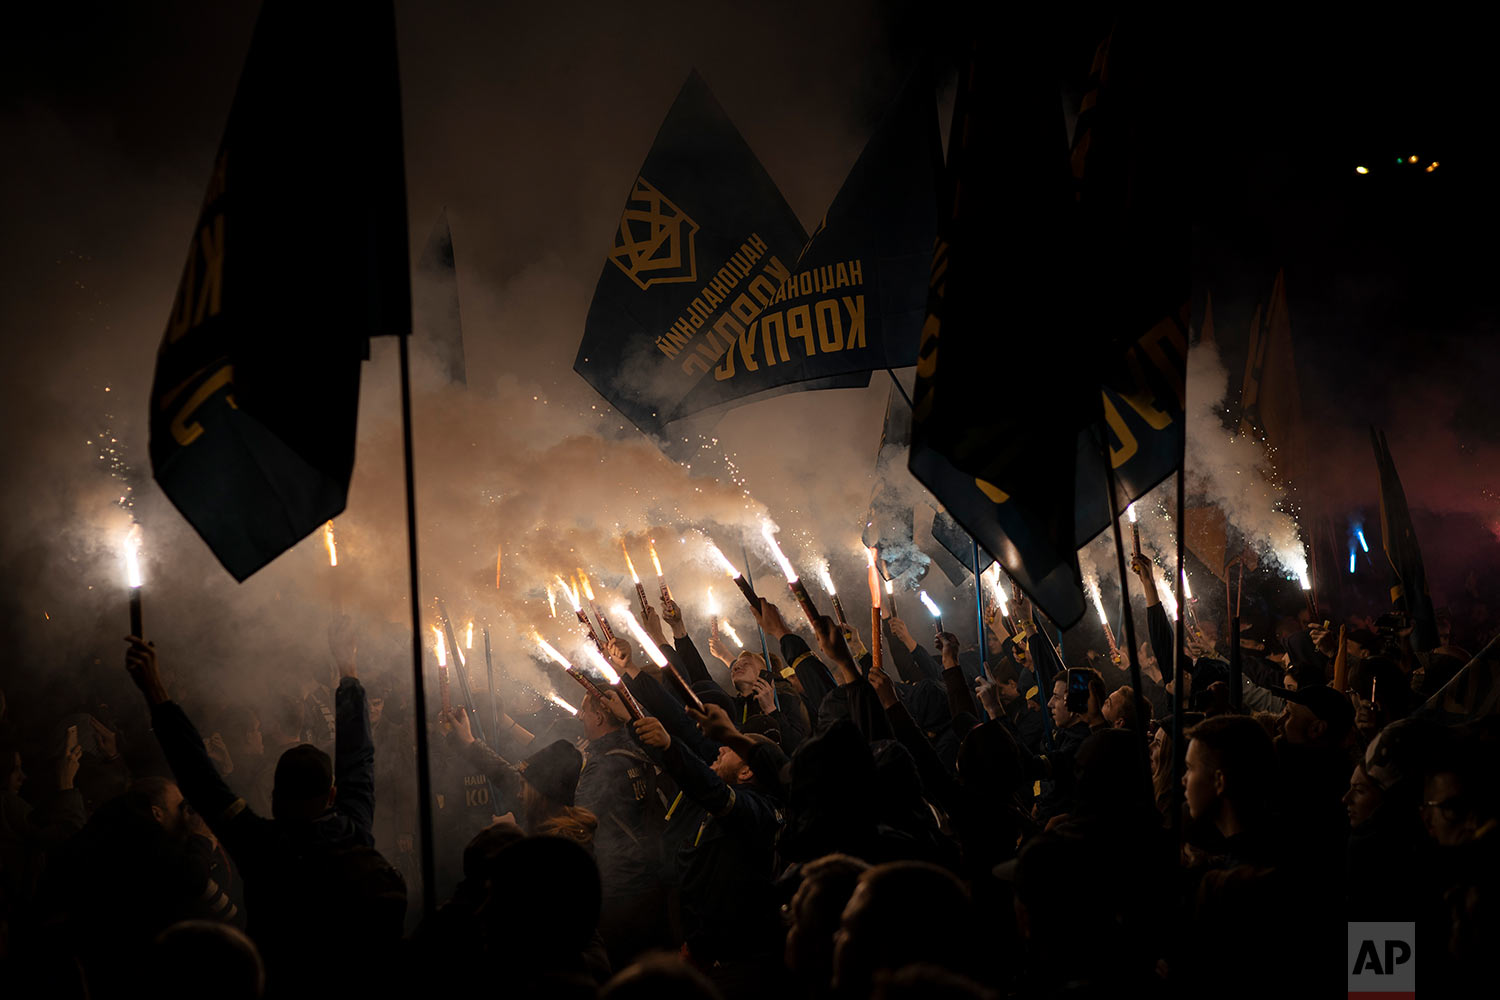 Members of nationalist movements light flares during a rally marking Defender of Ukraine Day in Kiev, Ukraine, Oct. 14, 2018. (AP Photo/Felipe Dana)